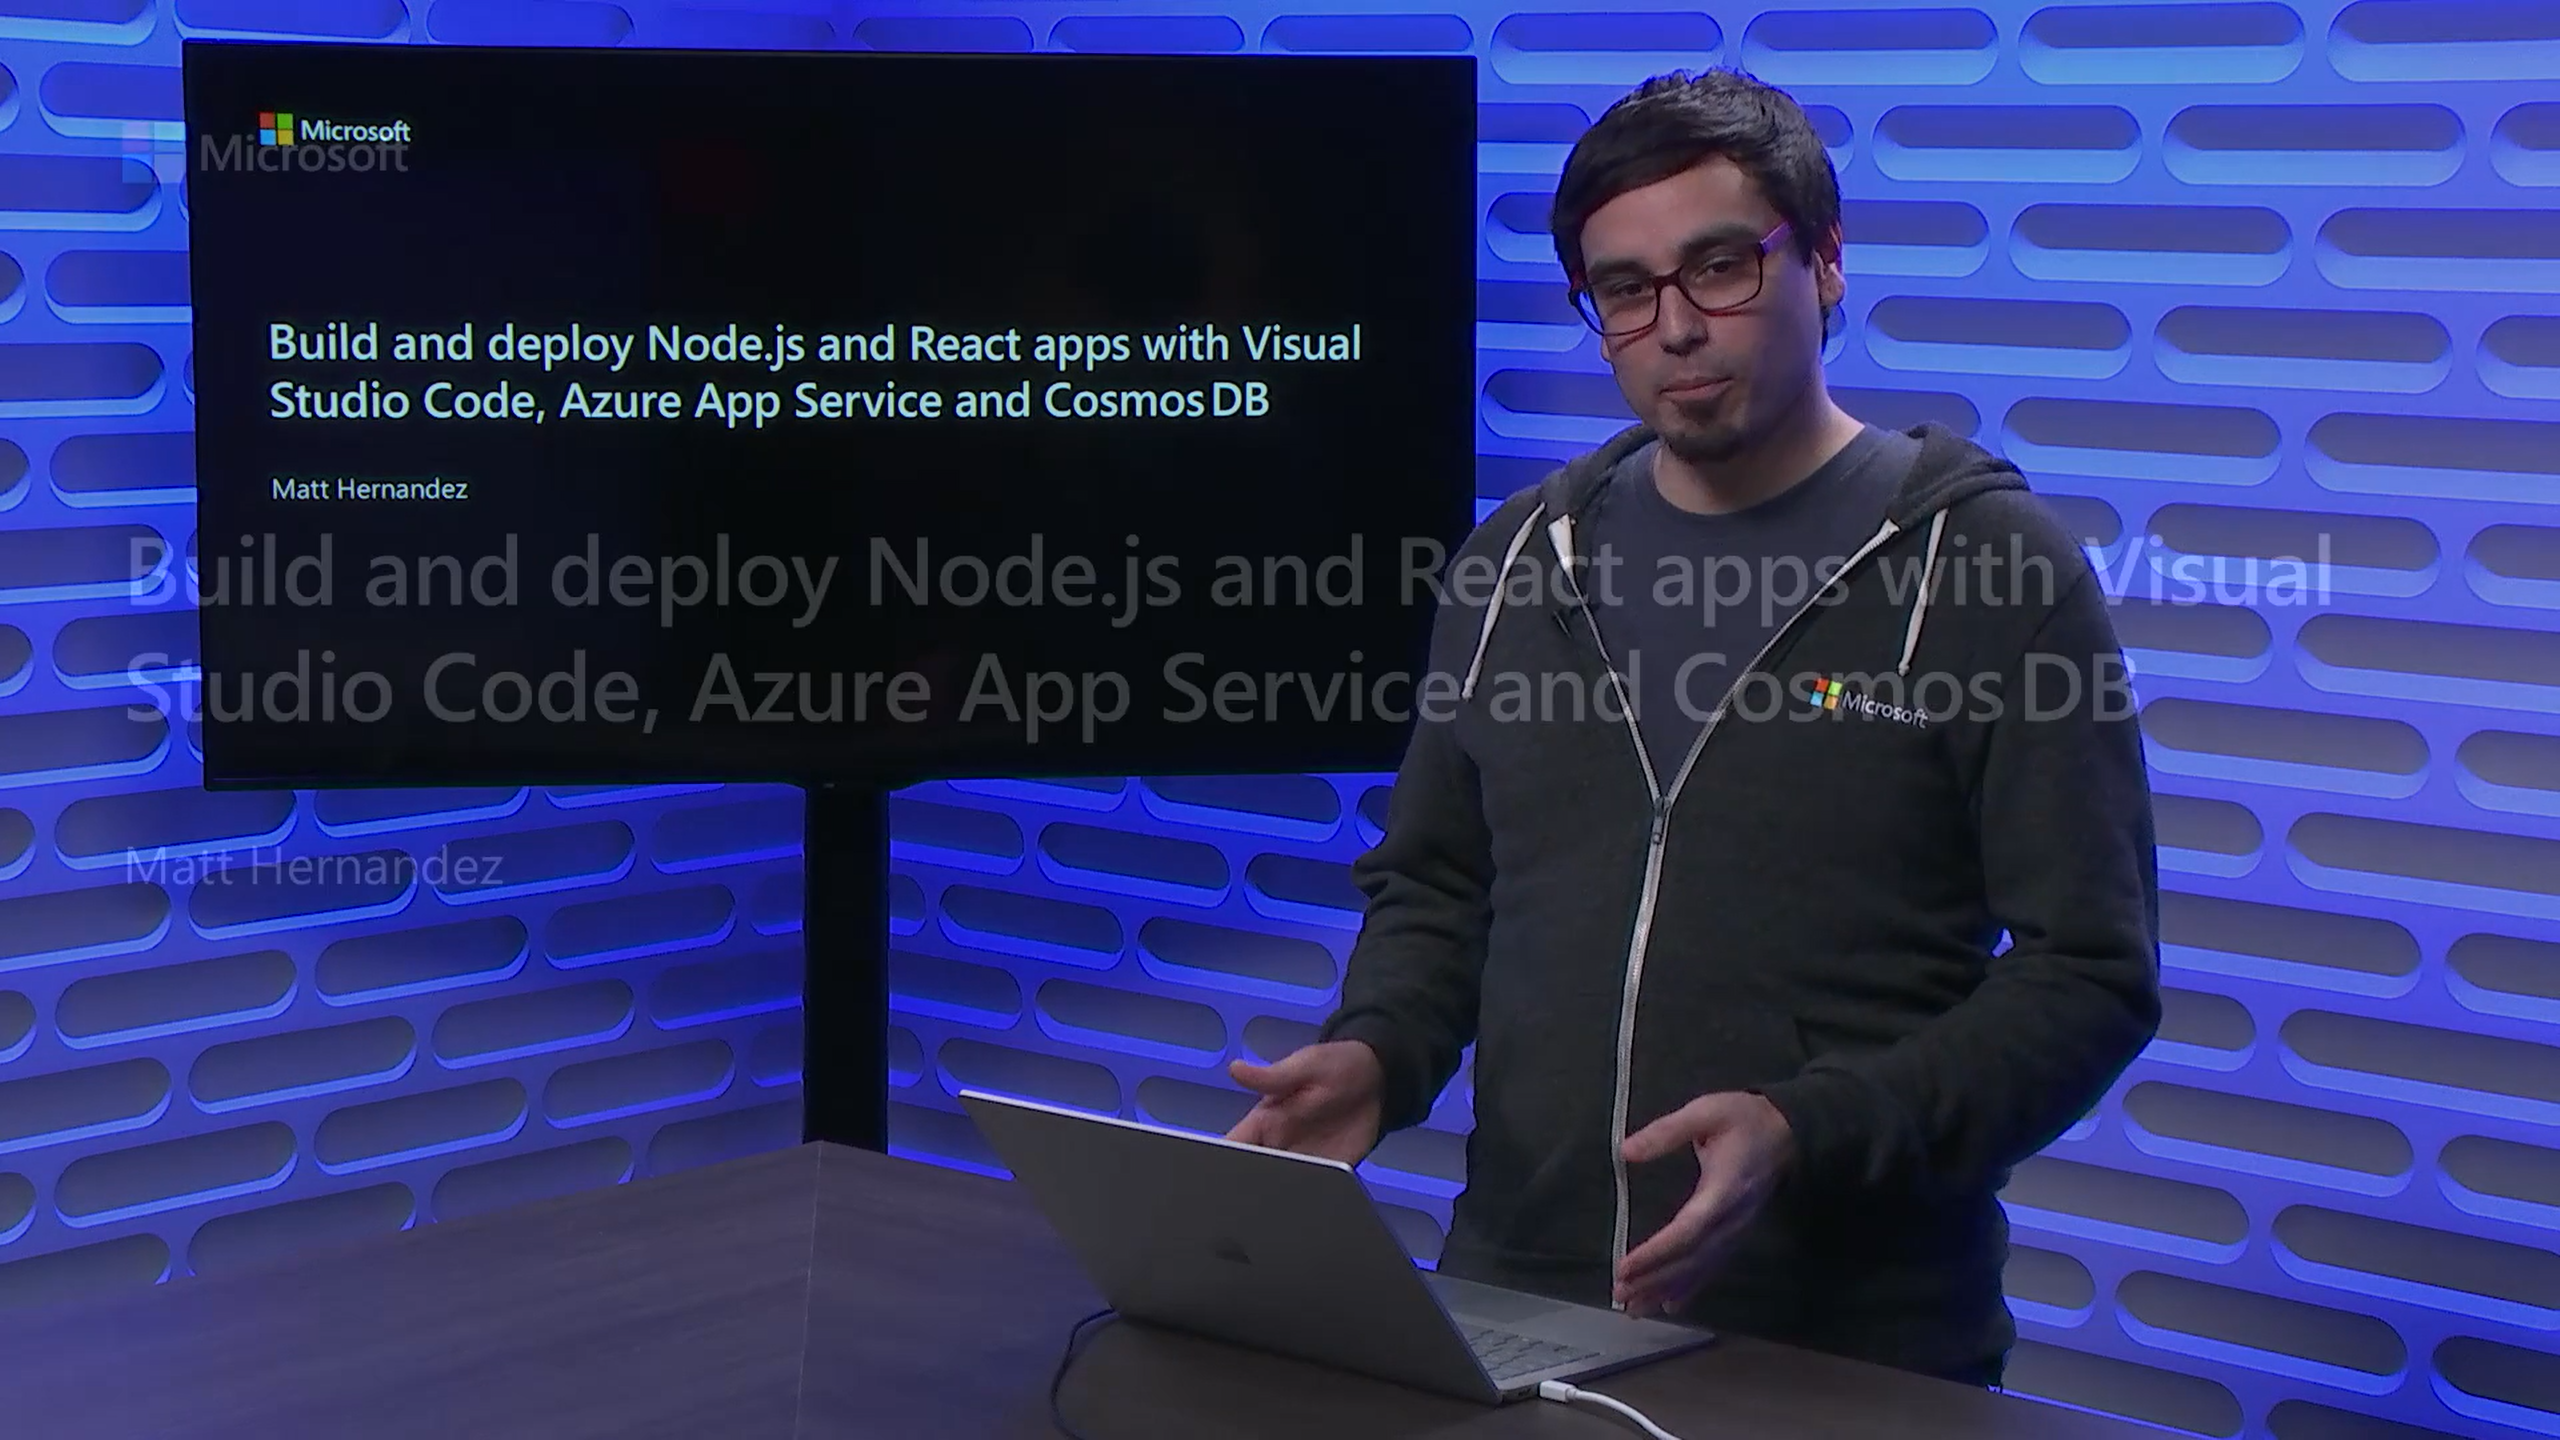 Build and deploy Node.js and React apps with Visual Studio Code, Azure App Service and Cosmos DB